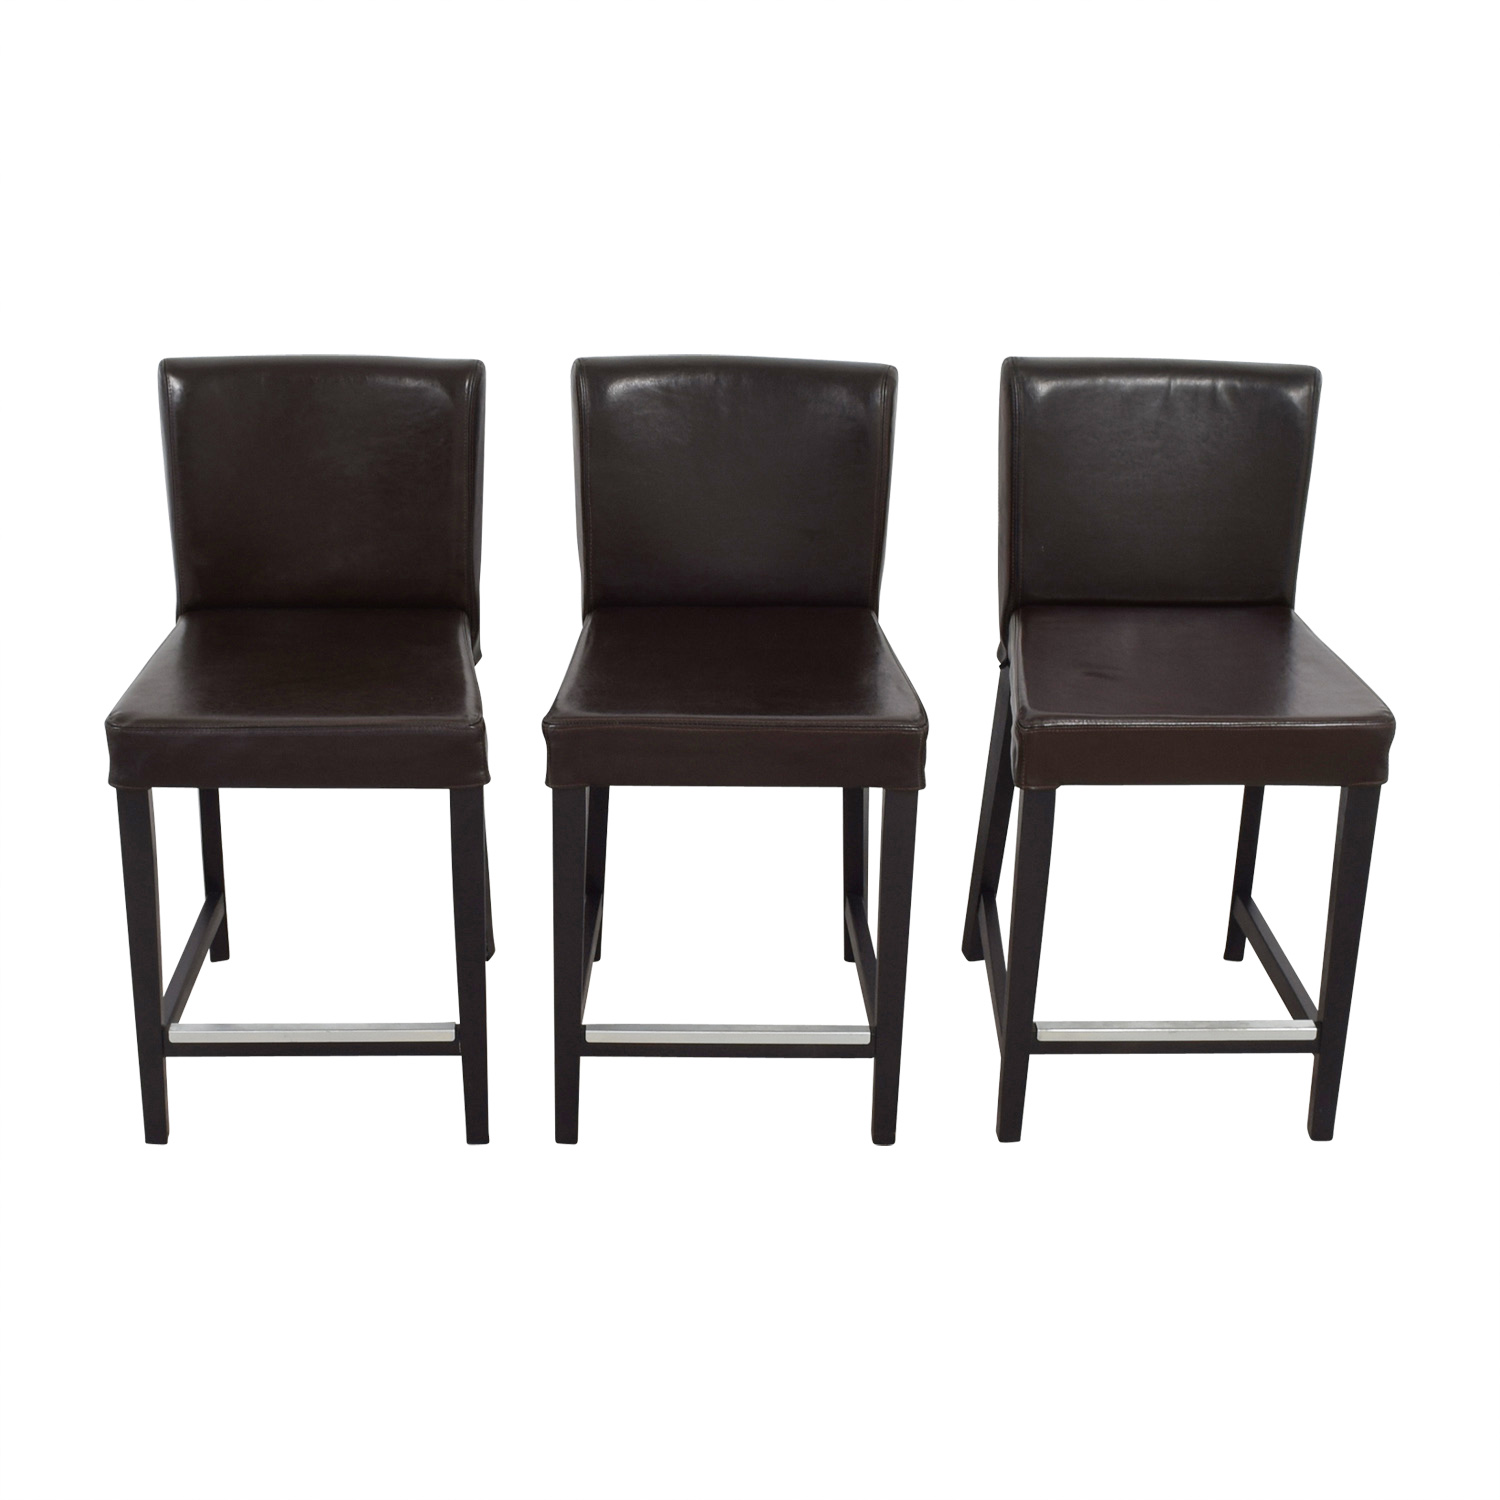 Miraculous 46 Off Ikea Ikea Henriksdal Brown Leather Bar Stools Chairs Machost Co Dining Chair Design Ideas Machostcouk